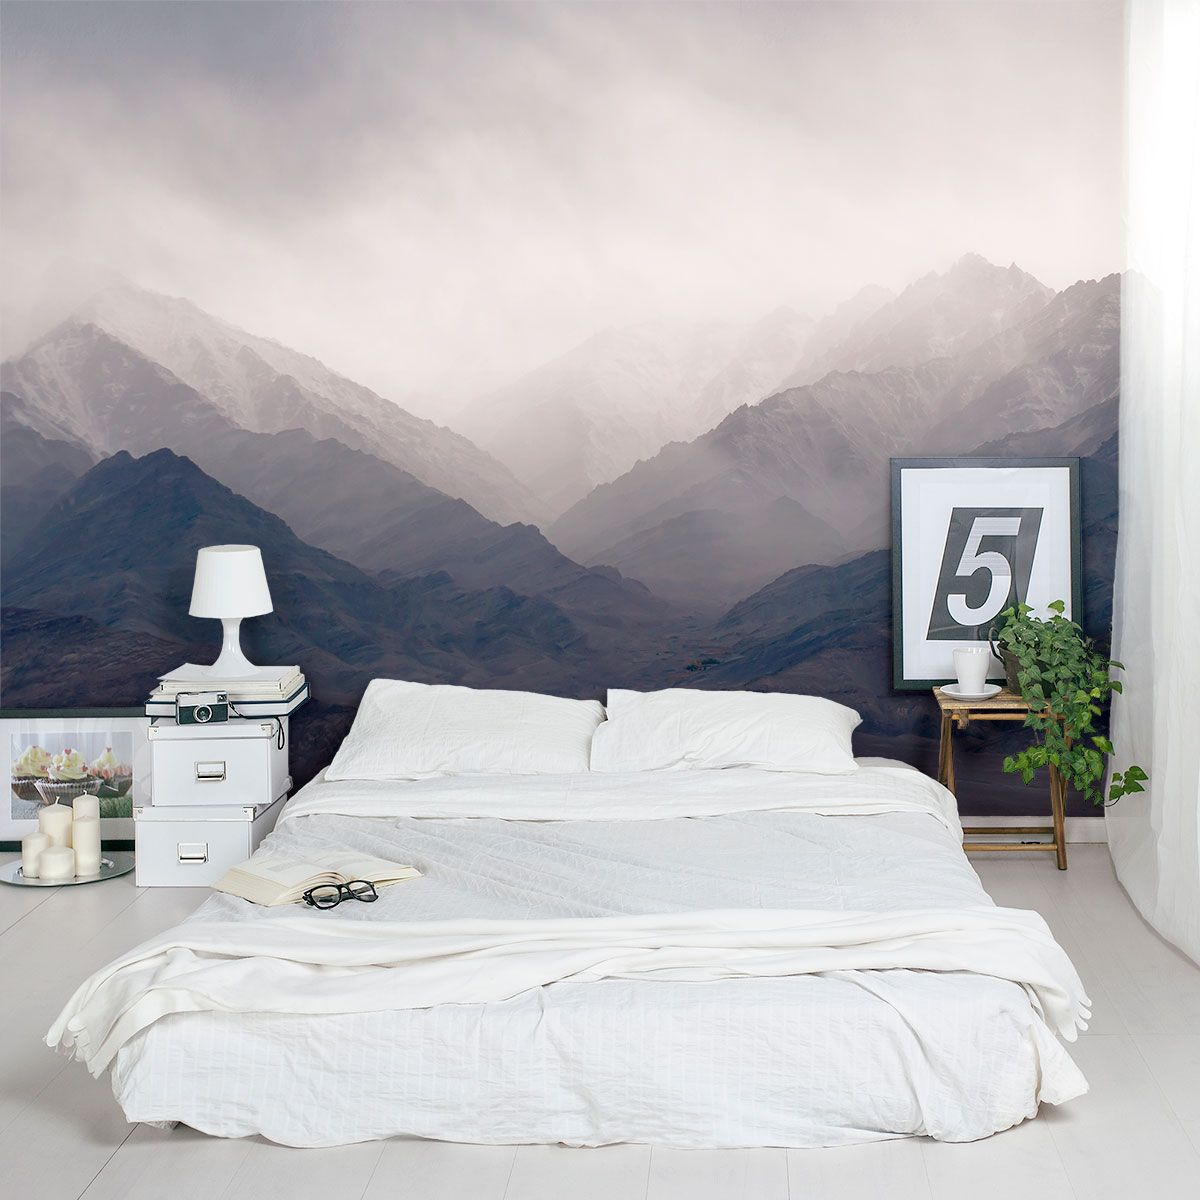 Misty mountains wall mural home decor walls - How to paint murals on bedroom walls ...